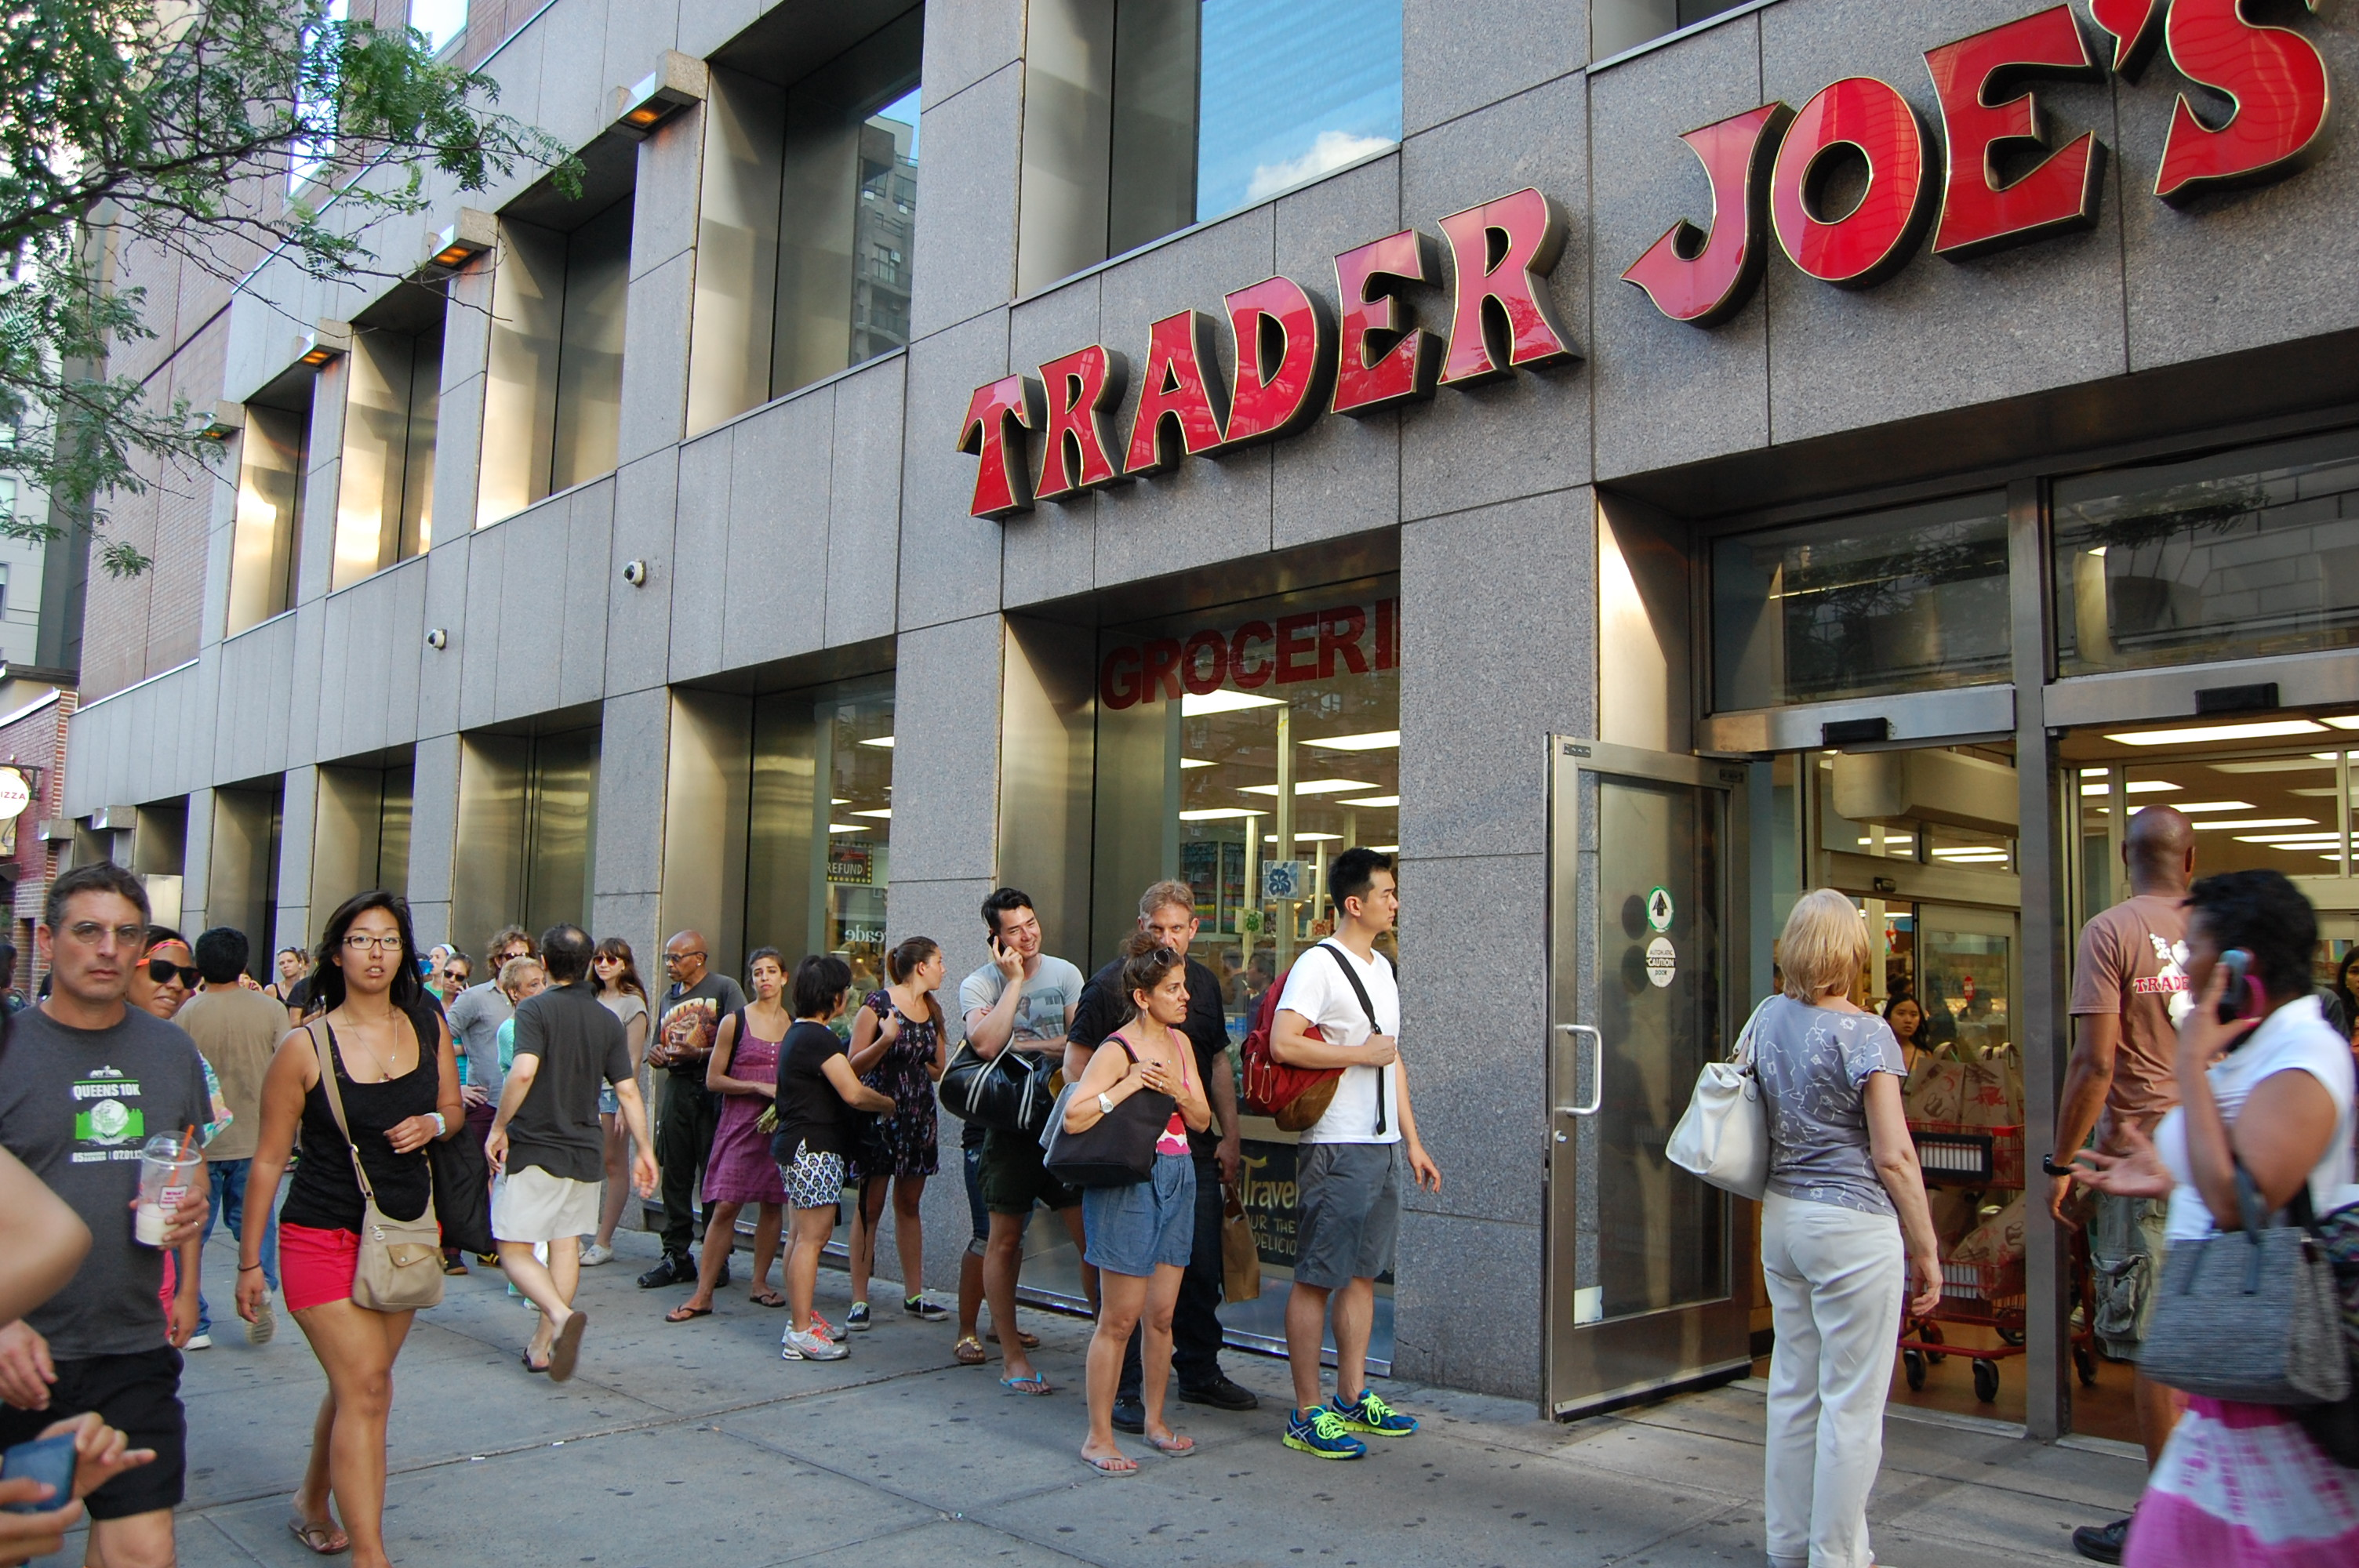 However, for all my pleasant feelings about New York, we have to agree: these are not acceptable shopping conditions. When I walked to work a few years ago -- a 2-mile trip -- I passed 3 Trader Joe's! I had the ability to waltz into each, no waiting, for free coffee, samples and legitimately 2-Buck Chuck (R.I.P.) The defense rests.